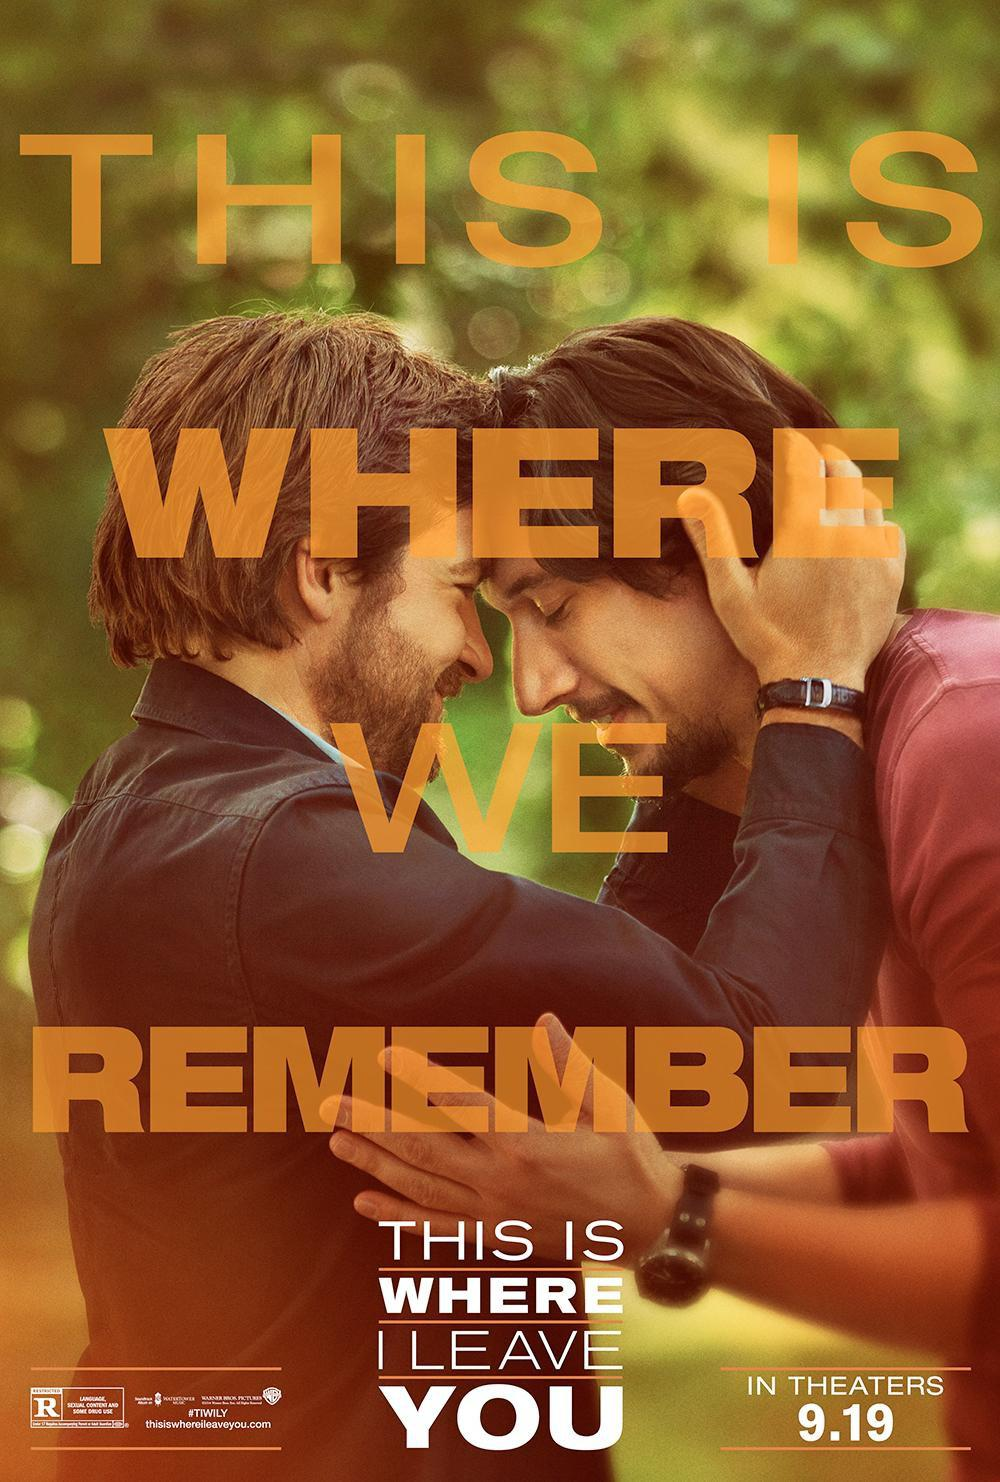 This is where I leave you - poster